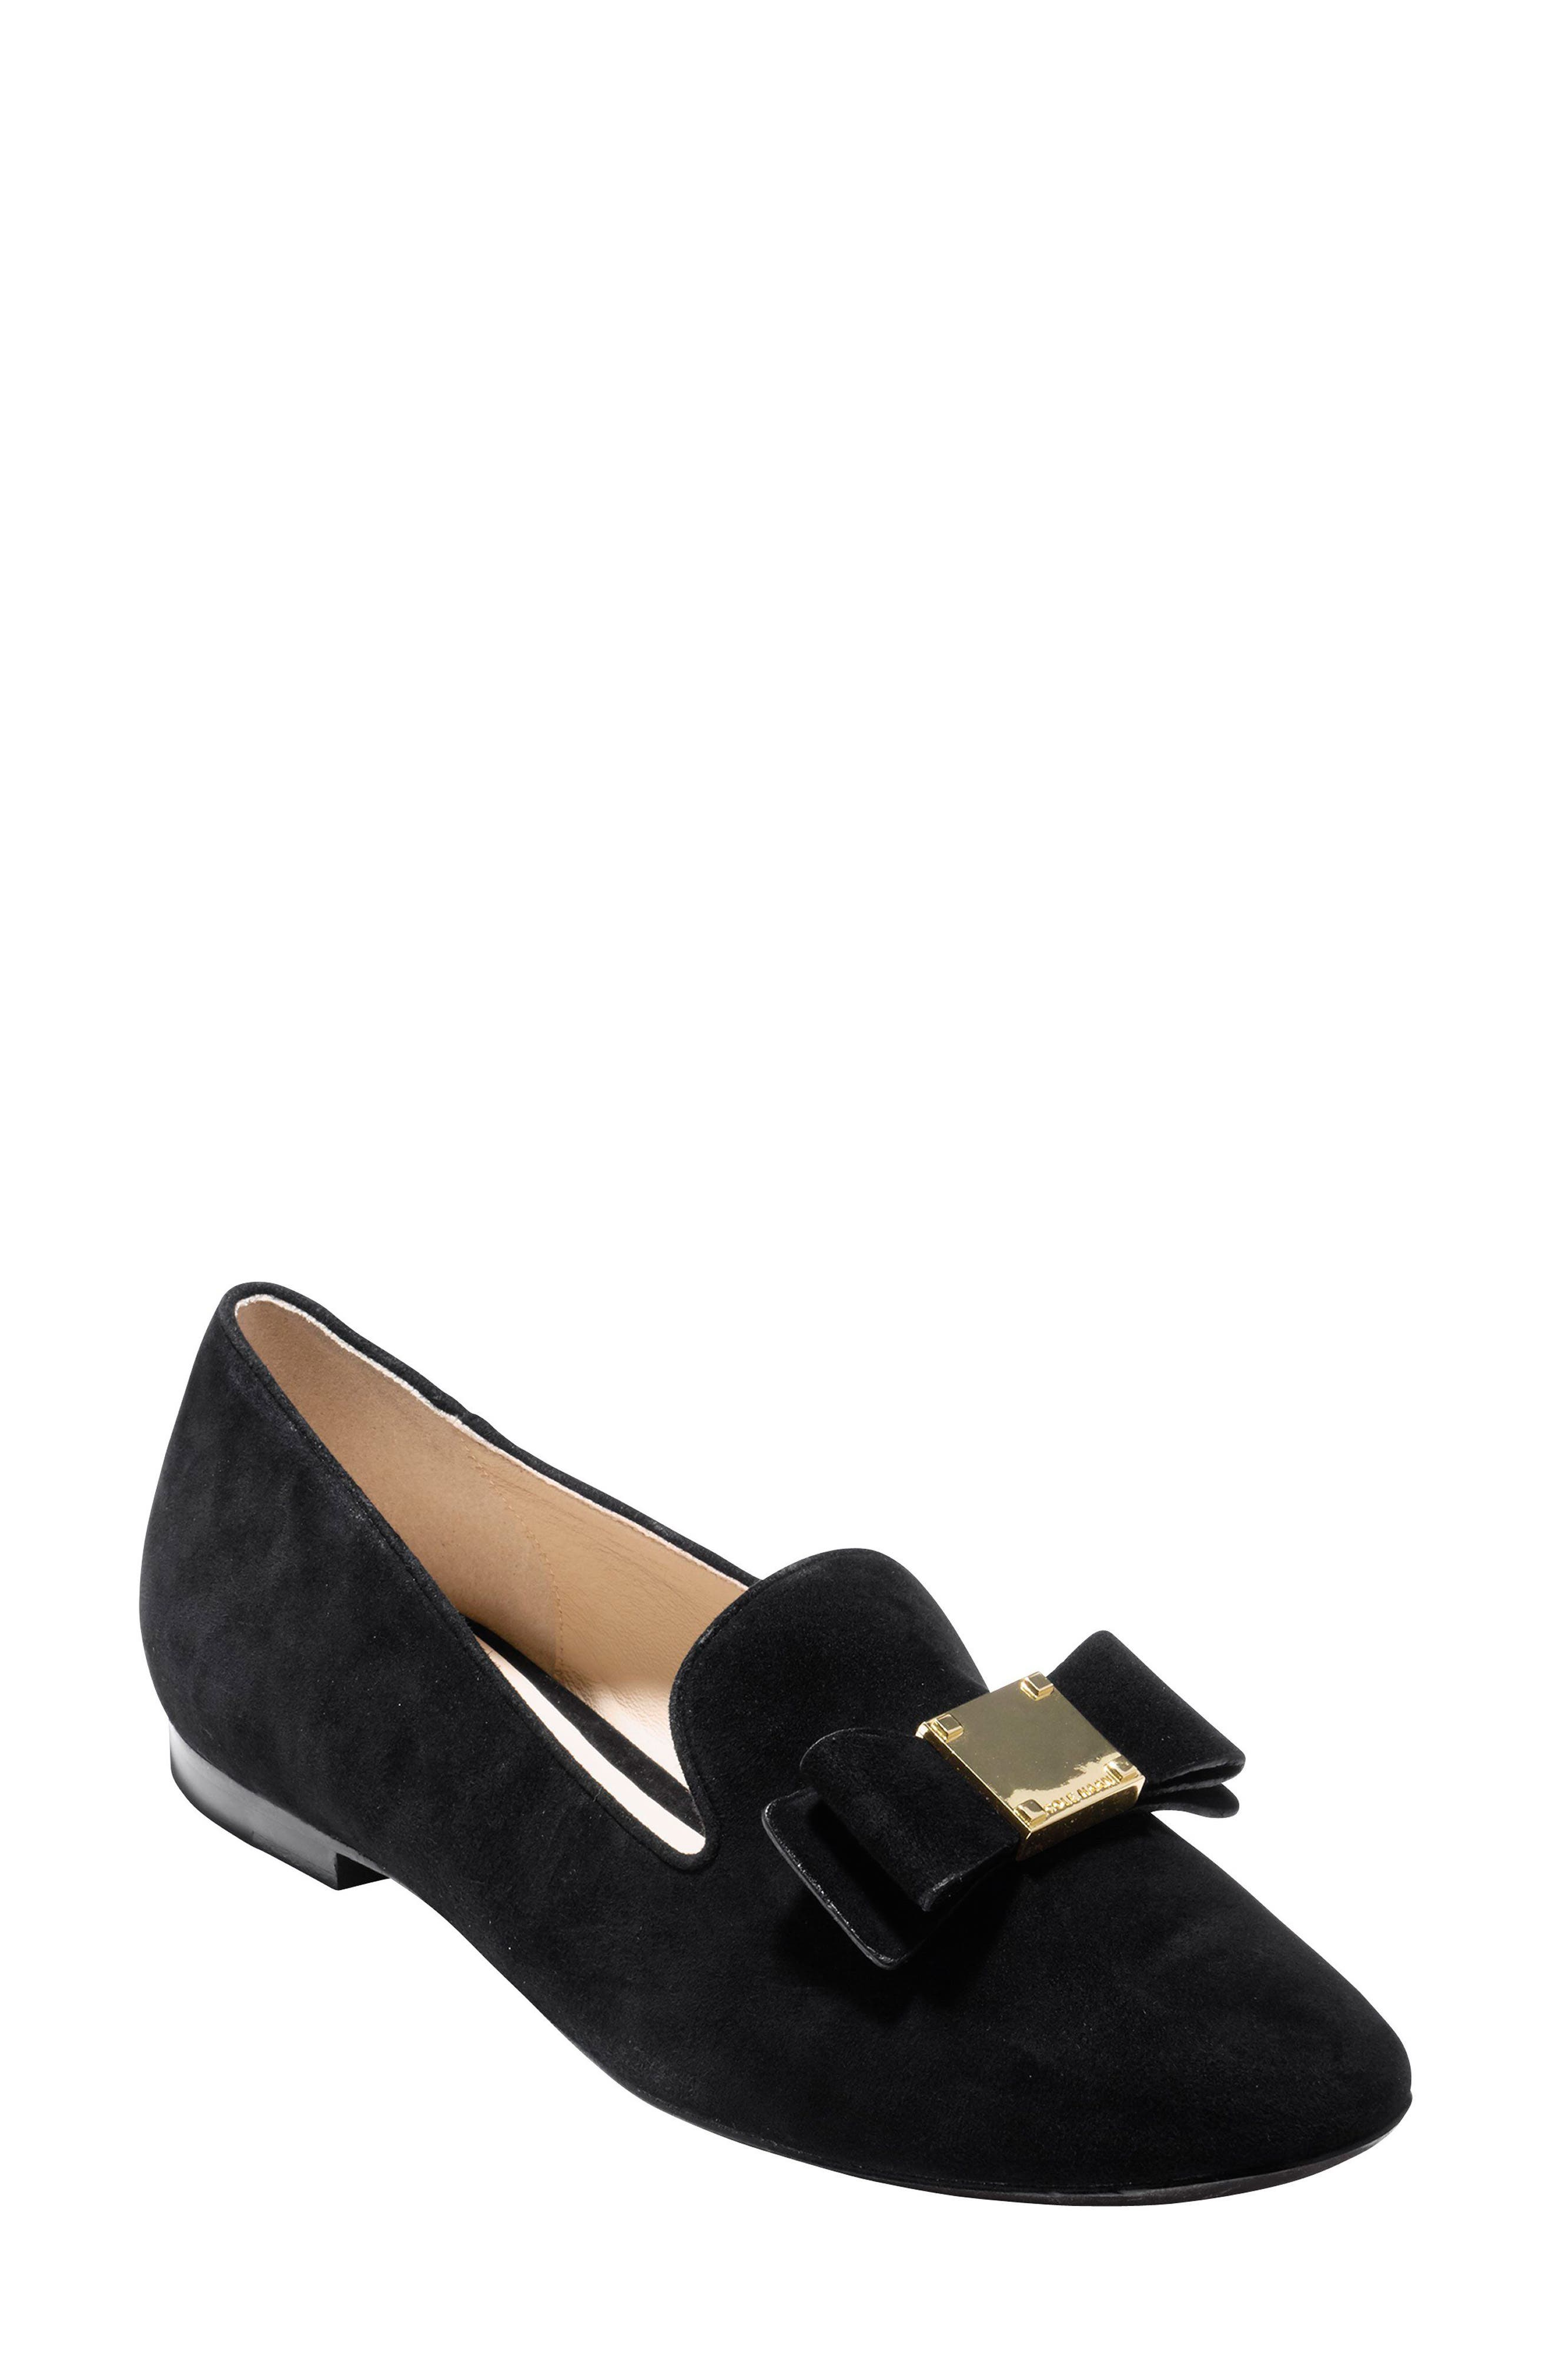 Main Image - Cole Haan Tali Bow Loafer (Women)